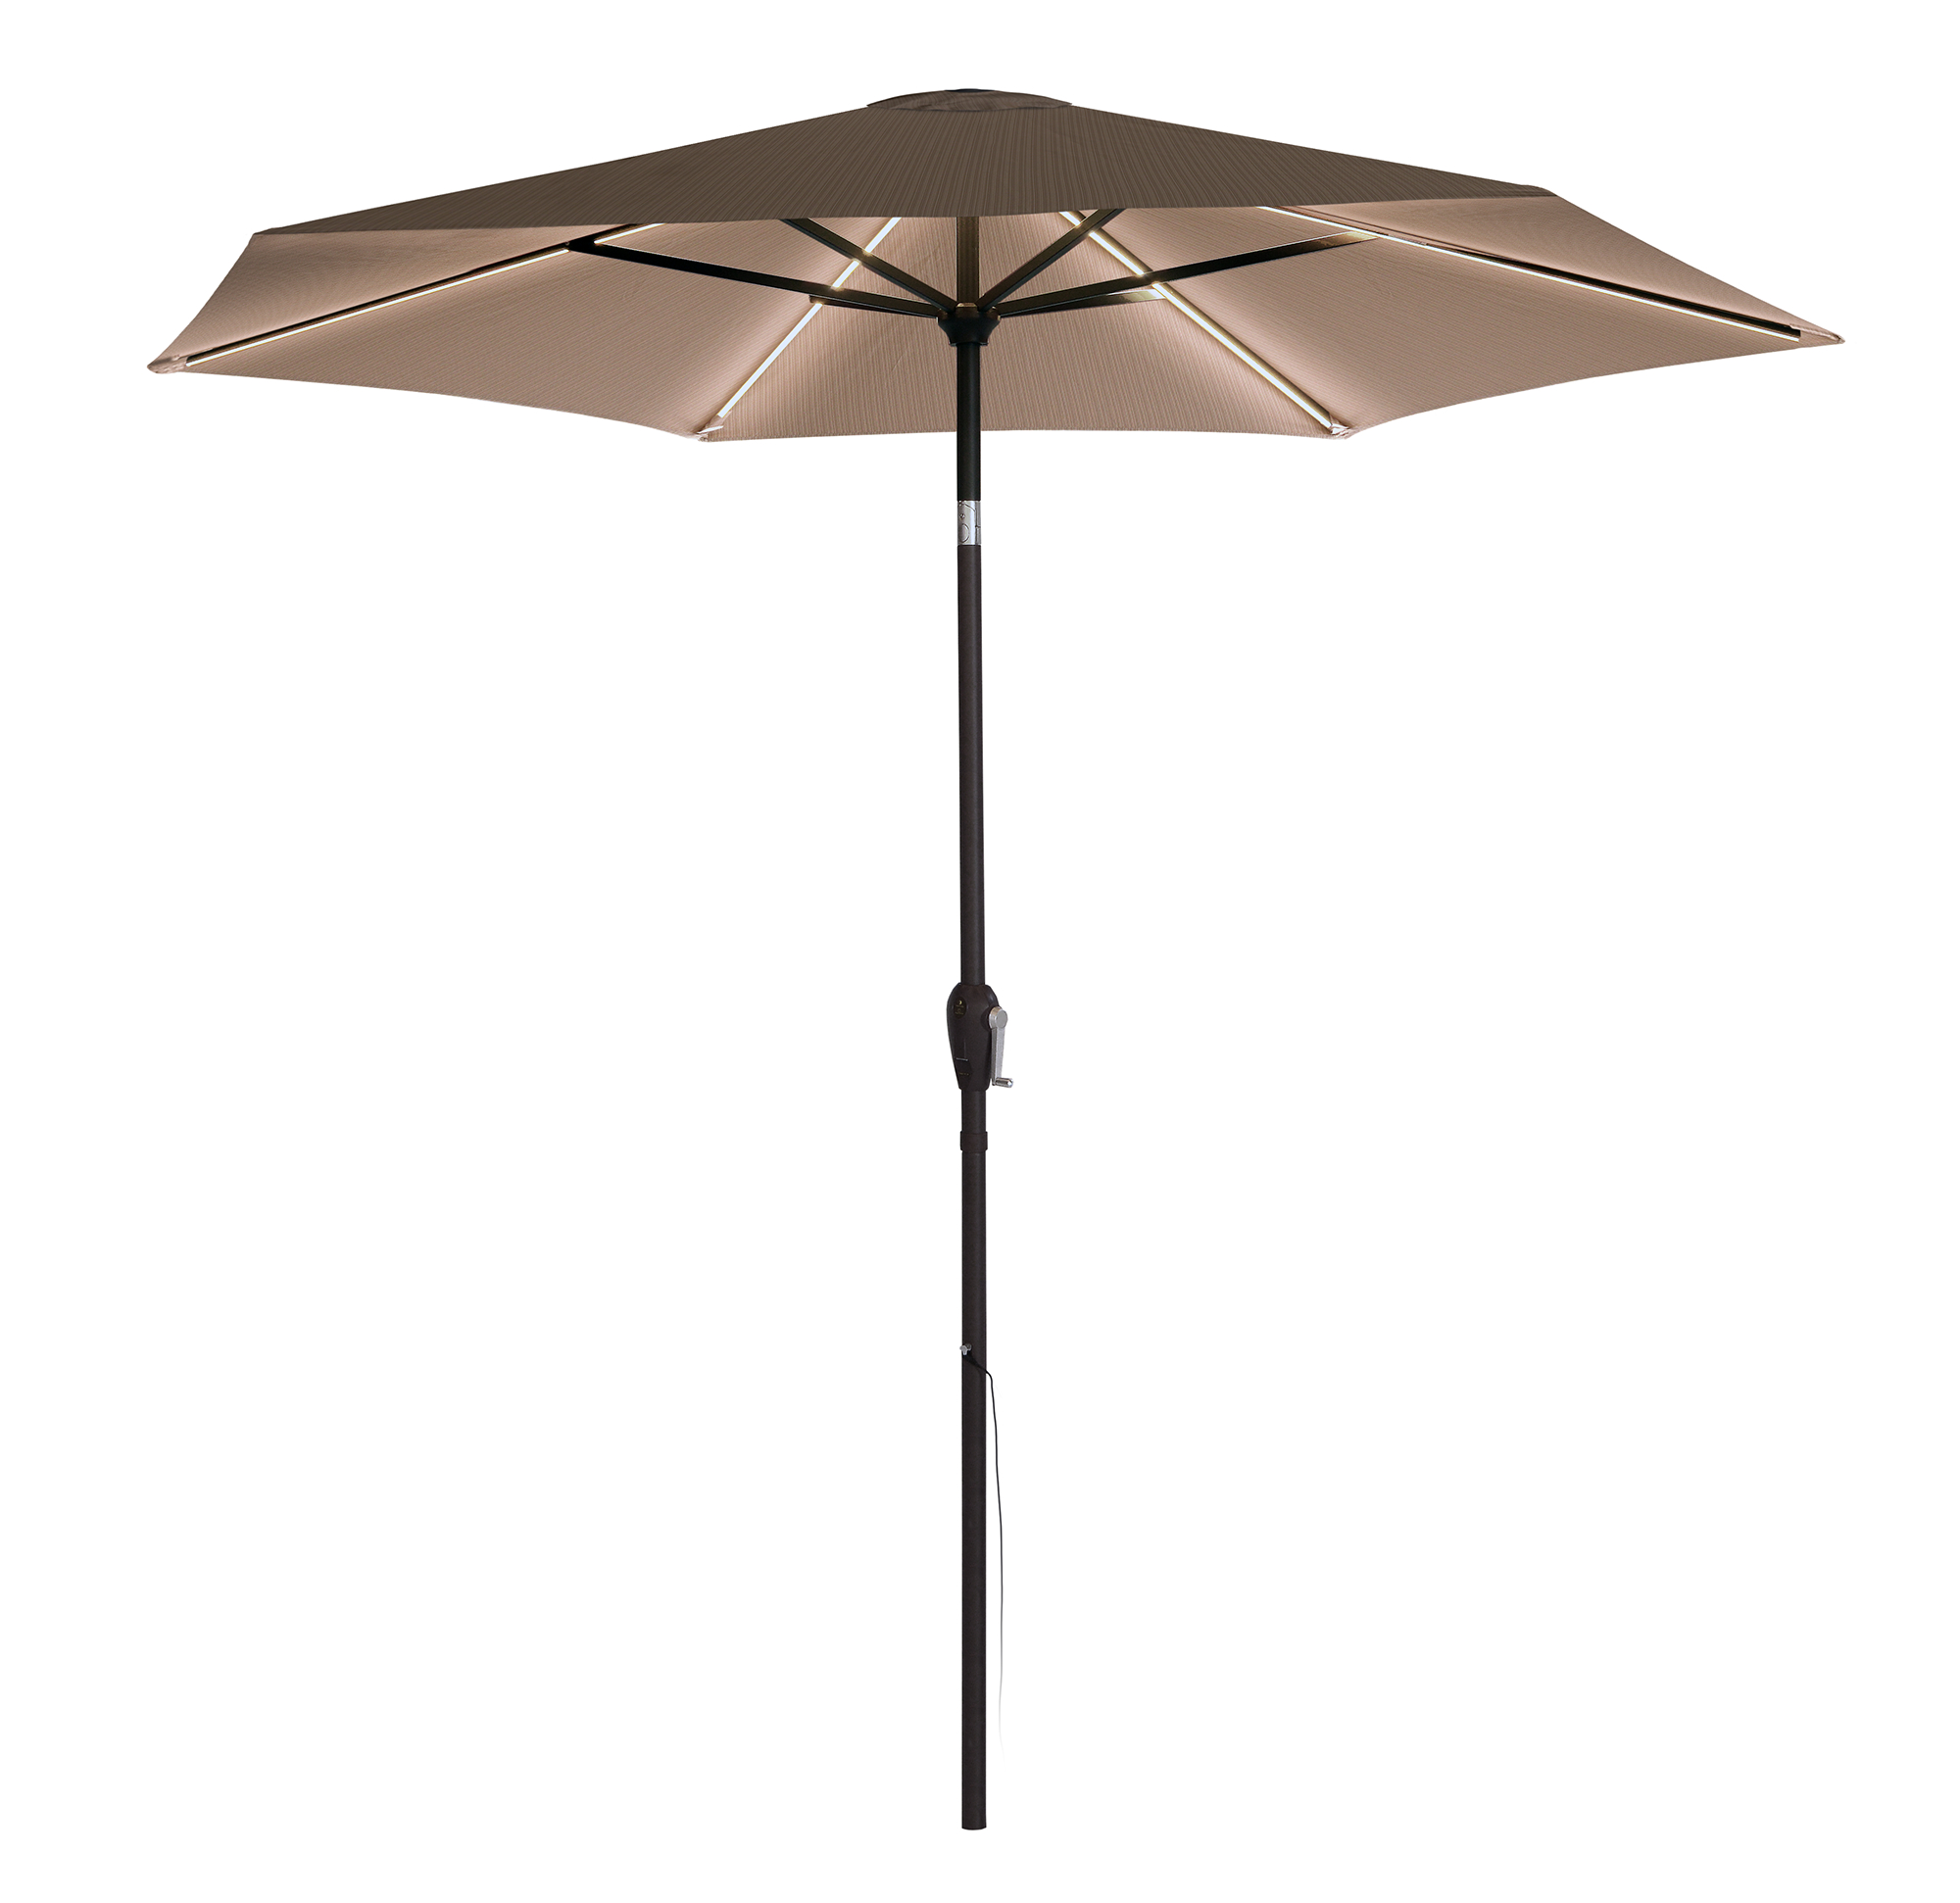 QS 9' UMBRELLA COOL WHITE, KHAKI COVER